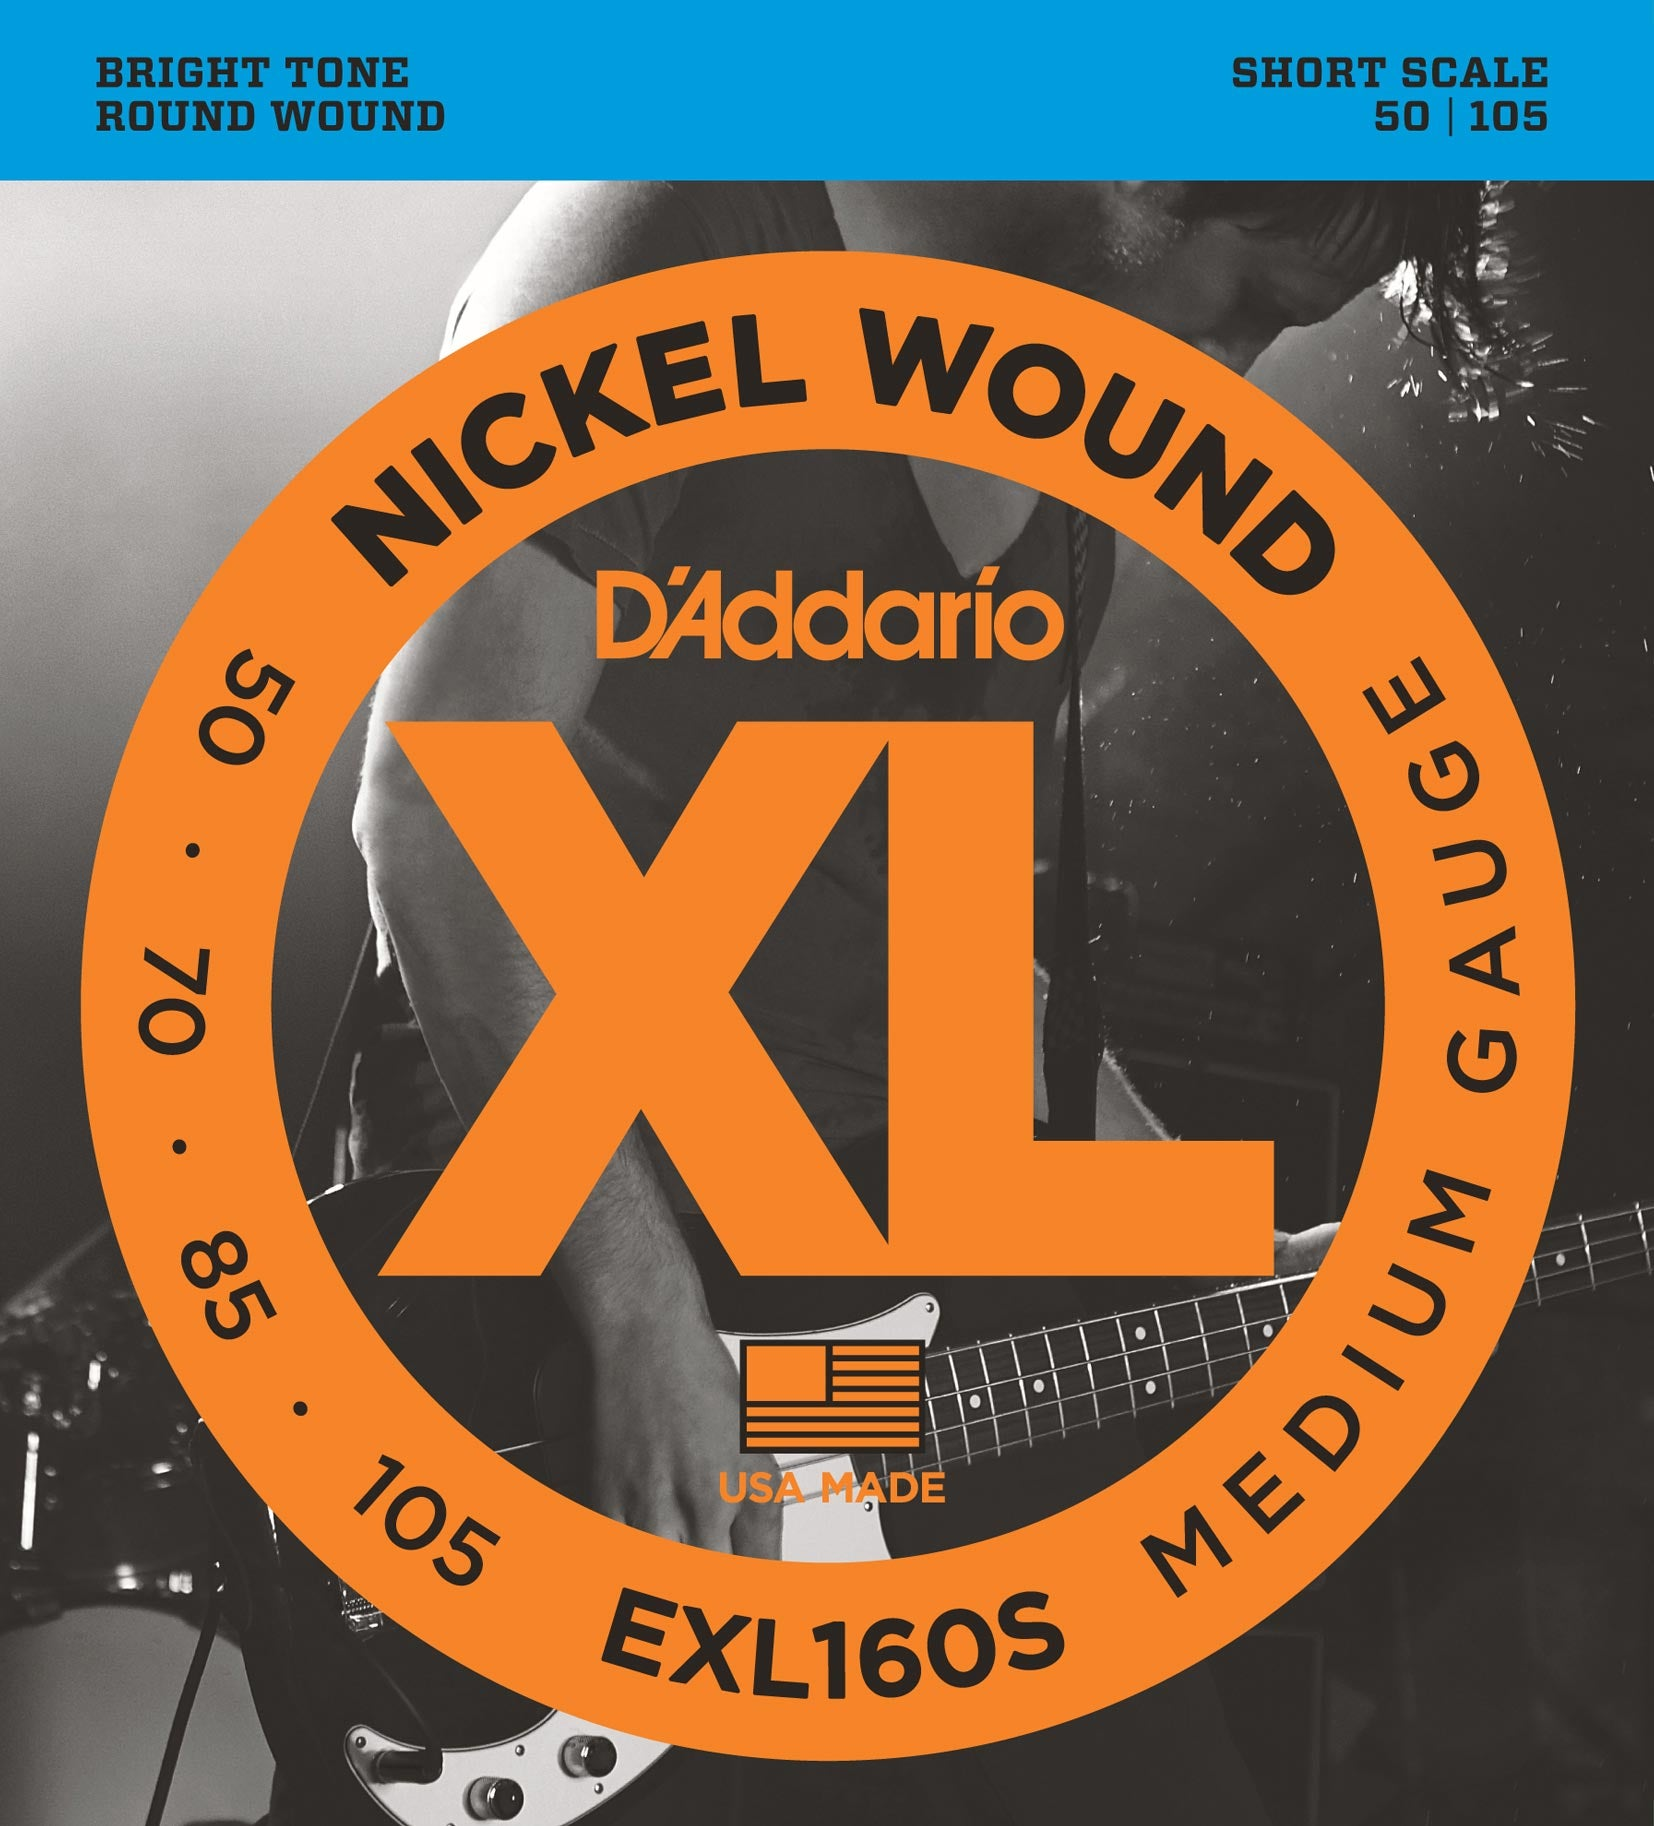 D'ADDARIO EXL160S NICKEL WOUND BASS STRINGS 50-105 SHORT SCALE